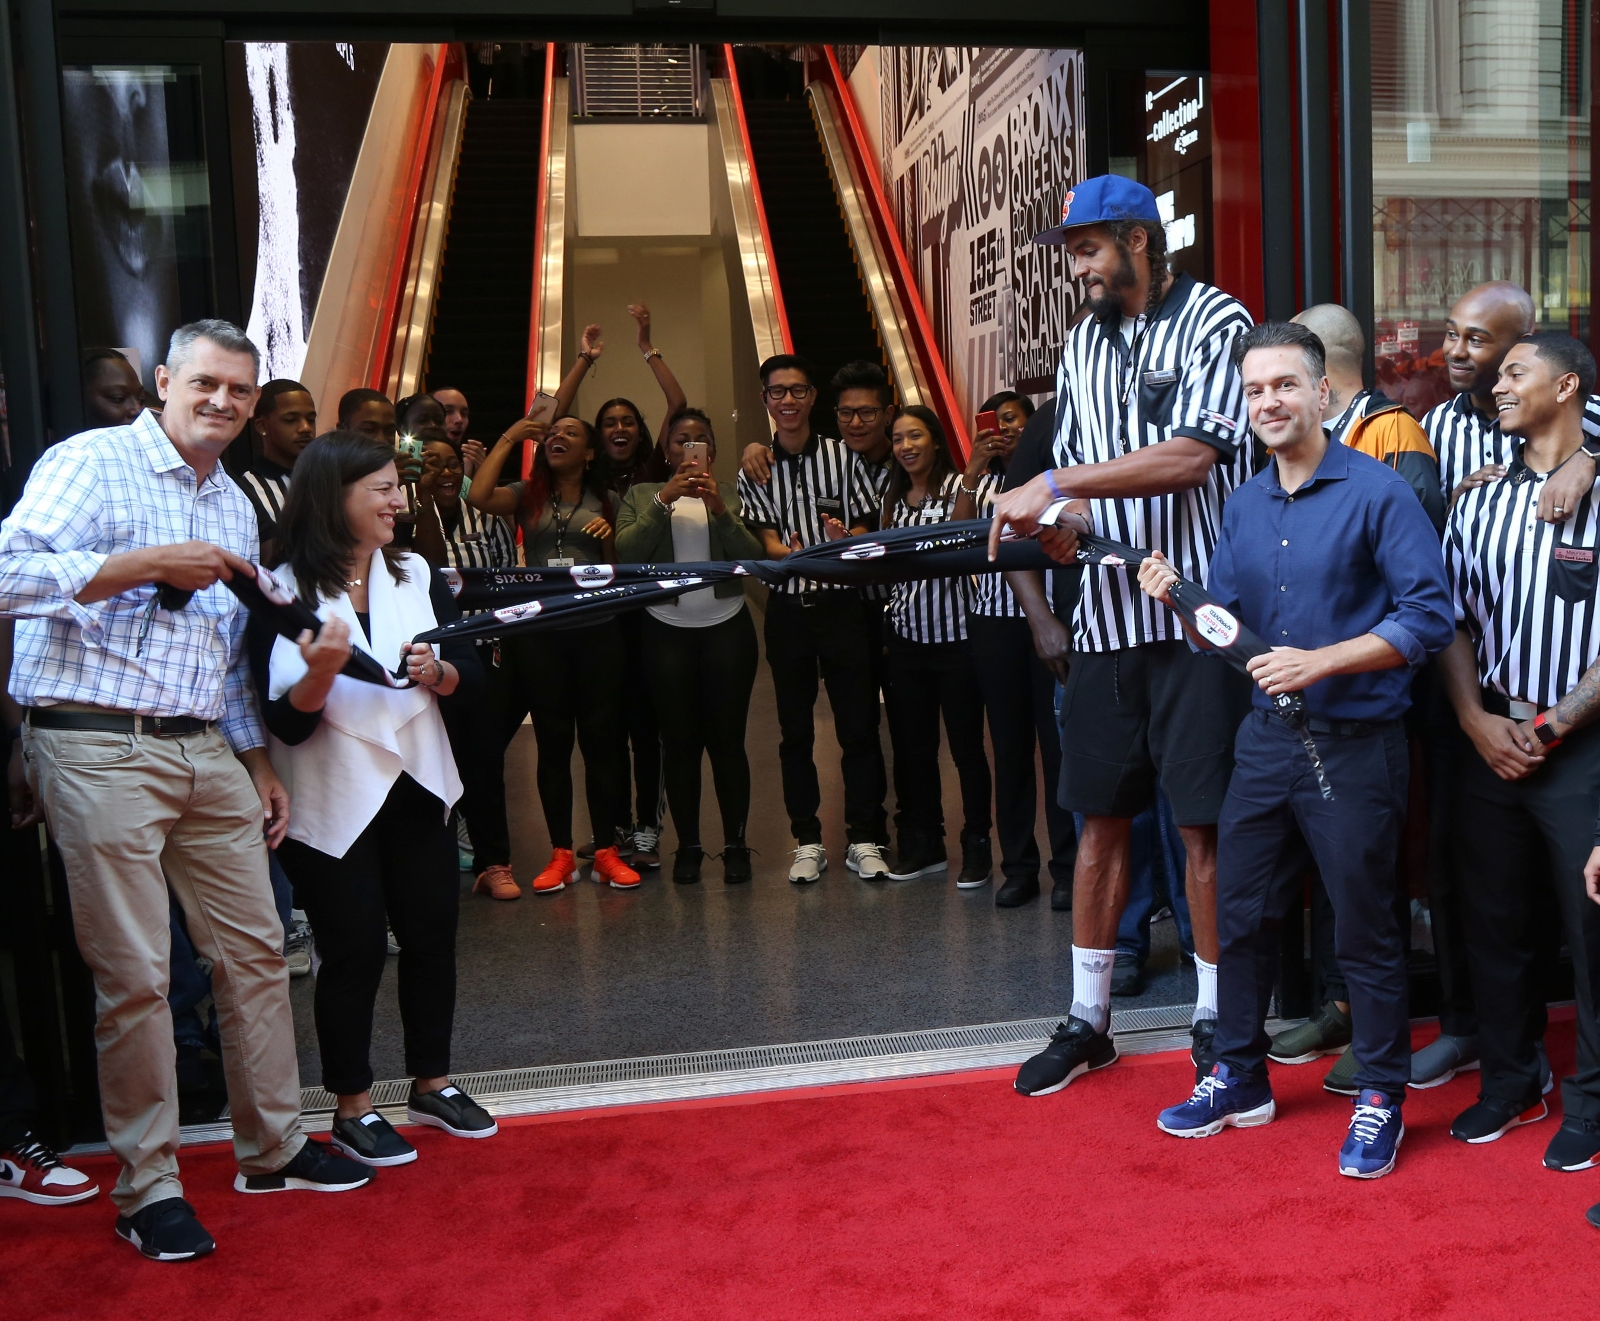 foot-locker-newyork-34th-street-renewal-open-20160830